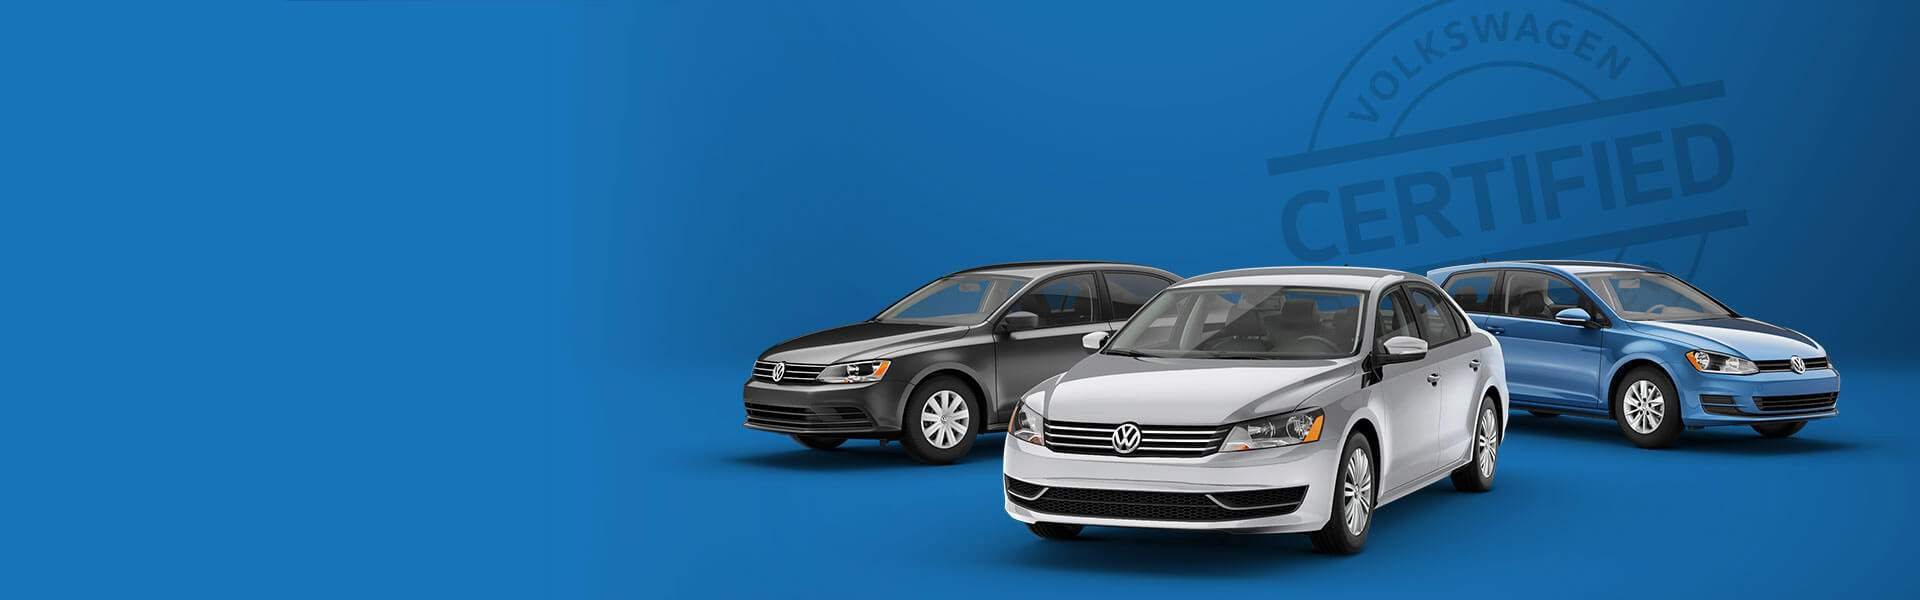 Volkswagen Certified Pre-Owned in Menomonee Falls, WI